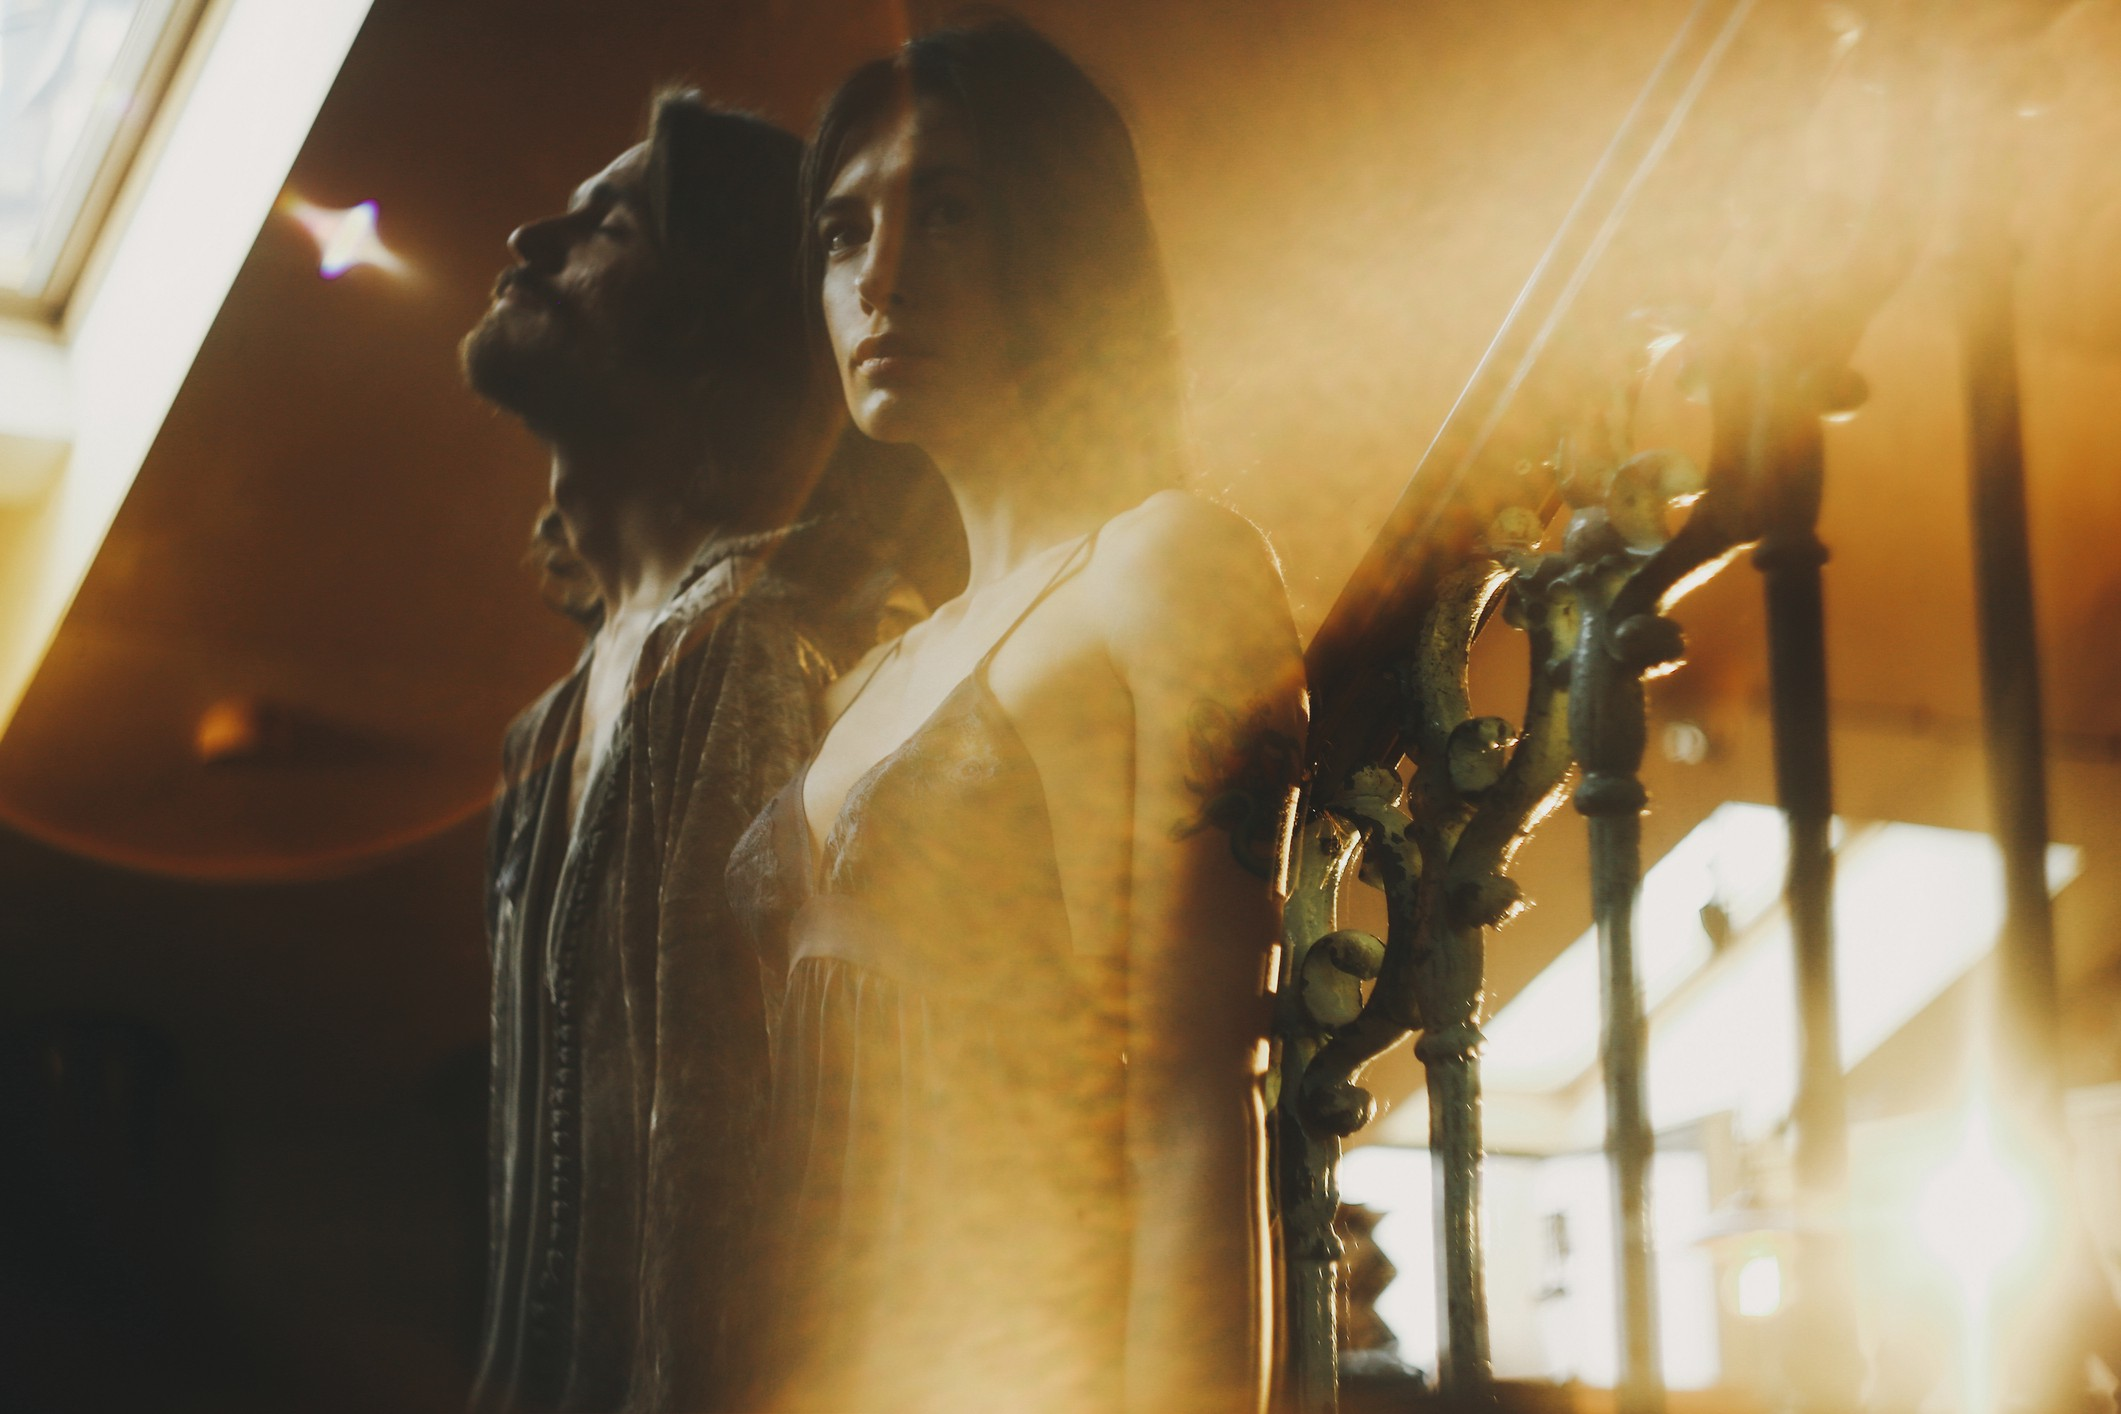 Double exposure of a couple standing on staircase against railing.